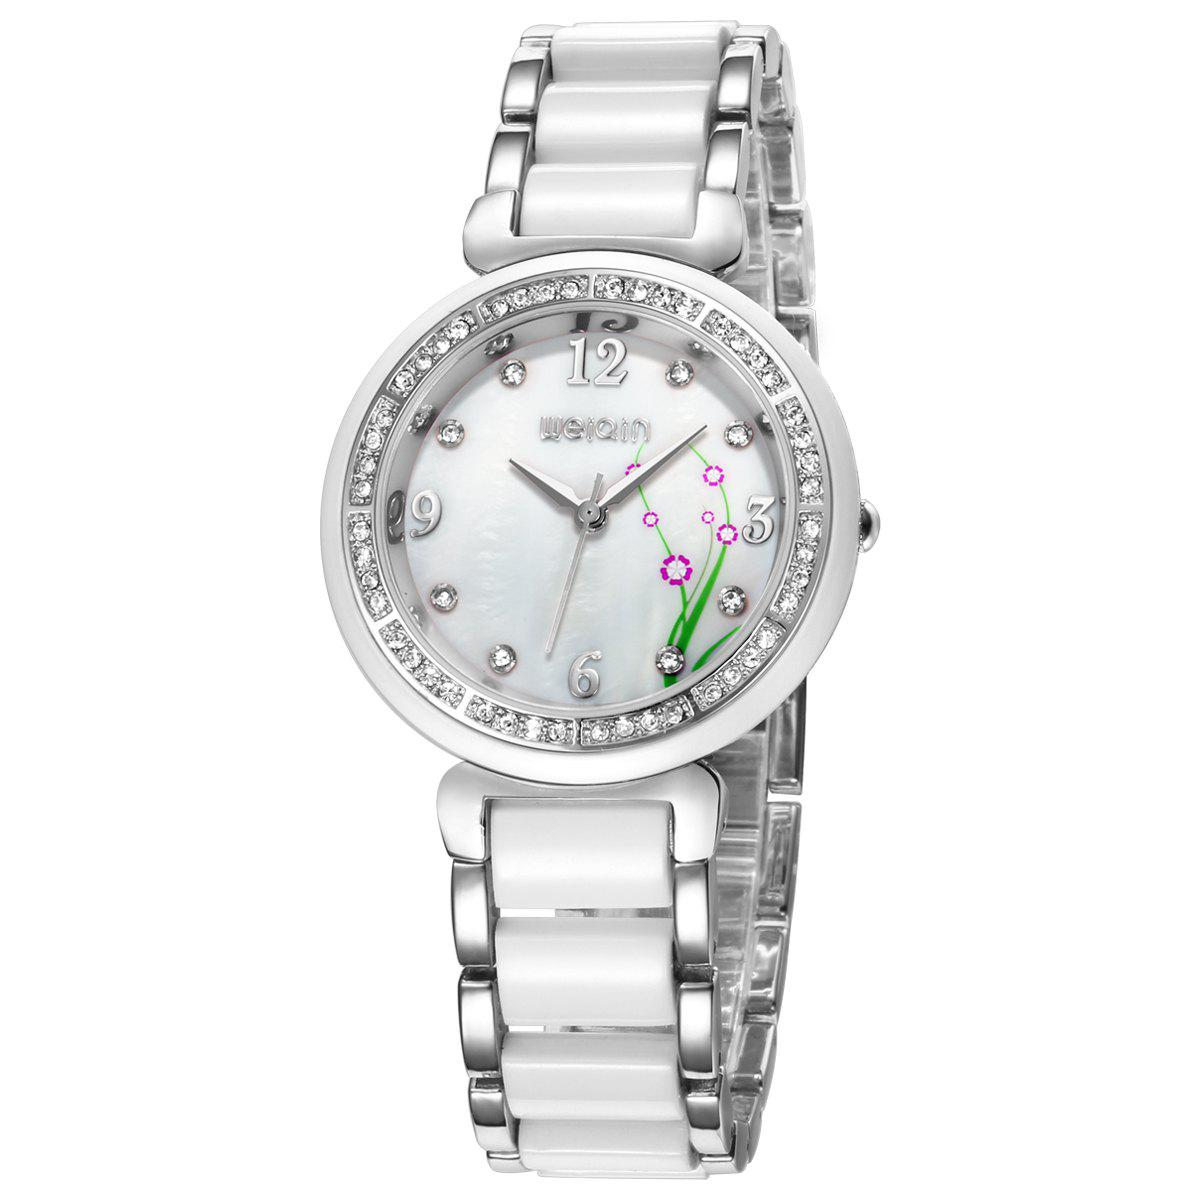 WeiQin 1096 Fashion Rhinestone Scale Quartz Watch for Female